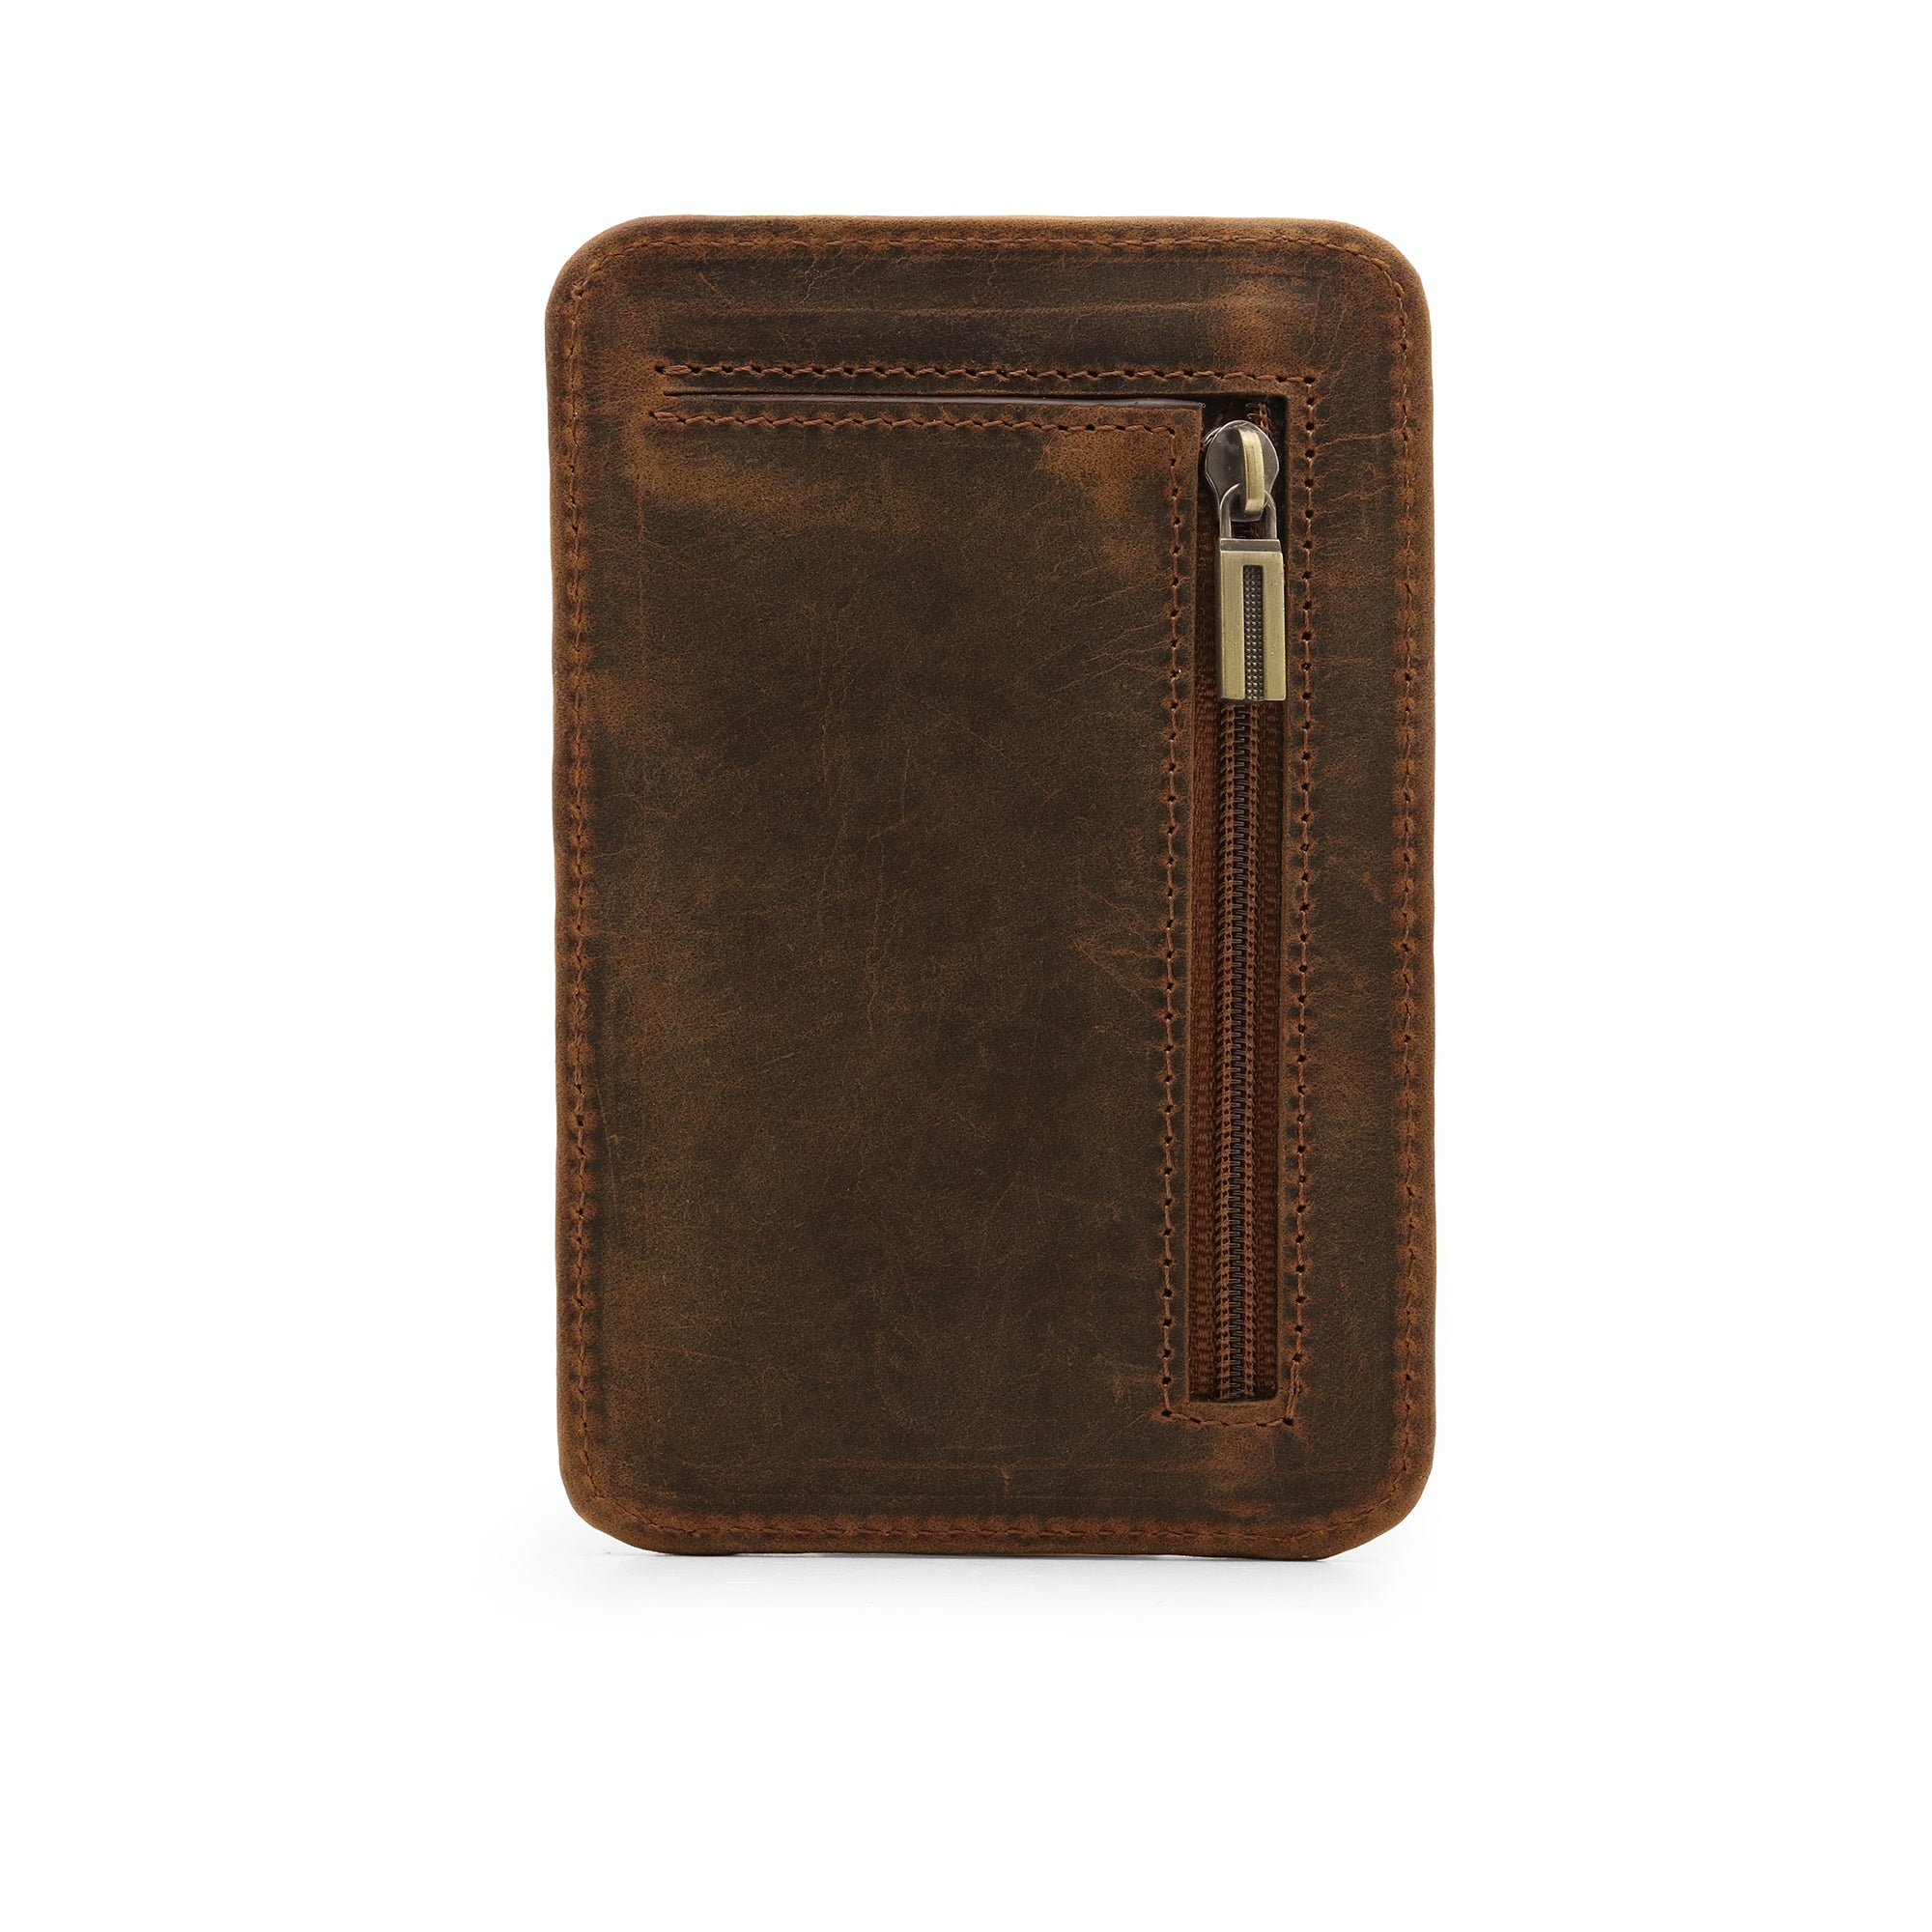 Canyon Leather Wallet - Cinnamon 1